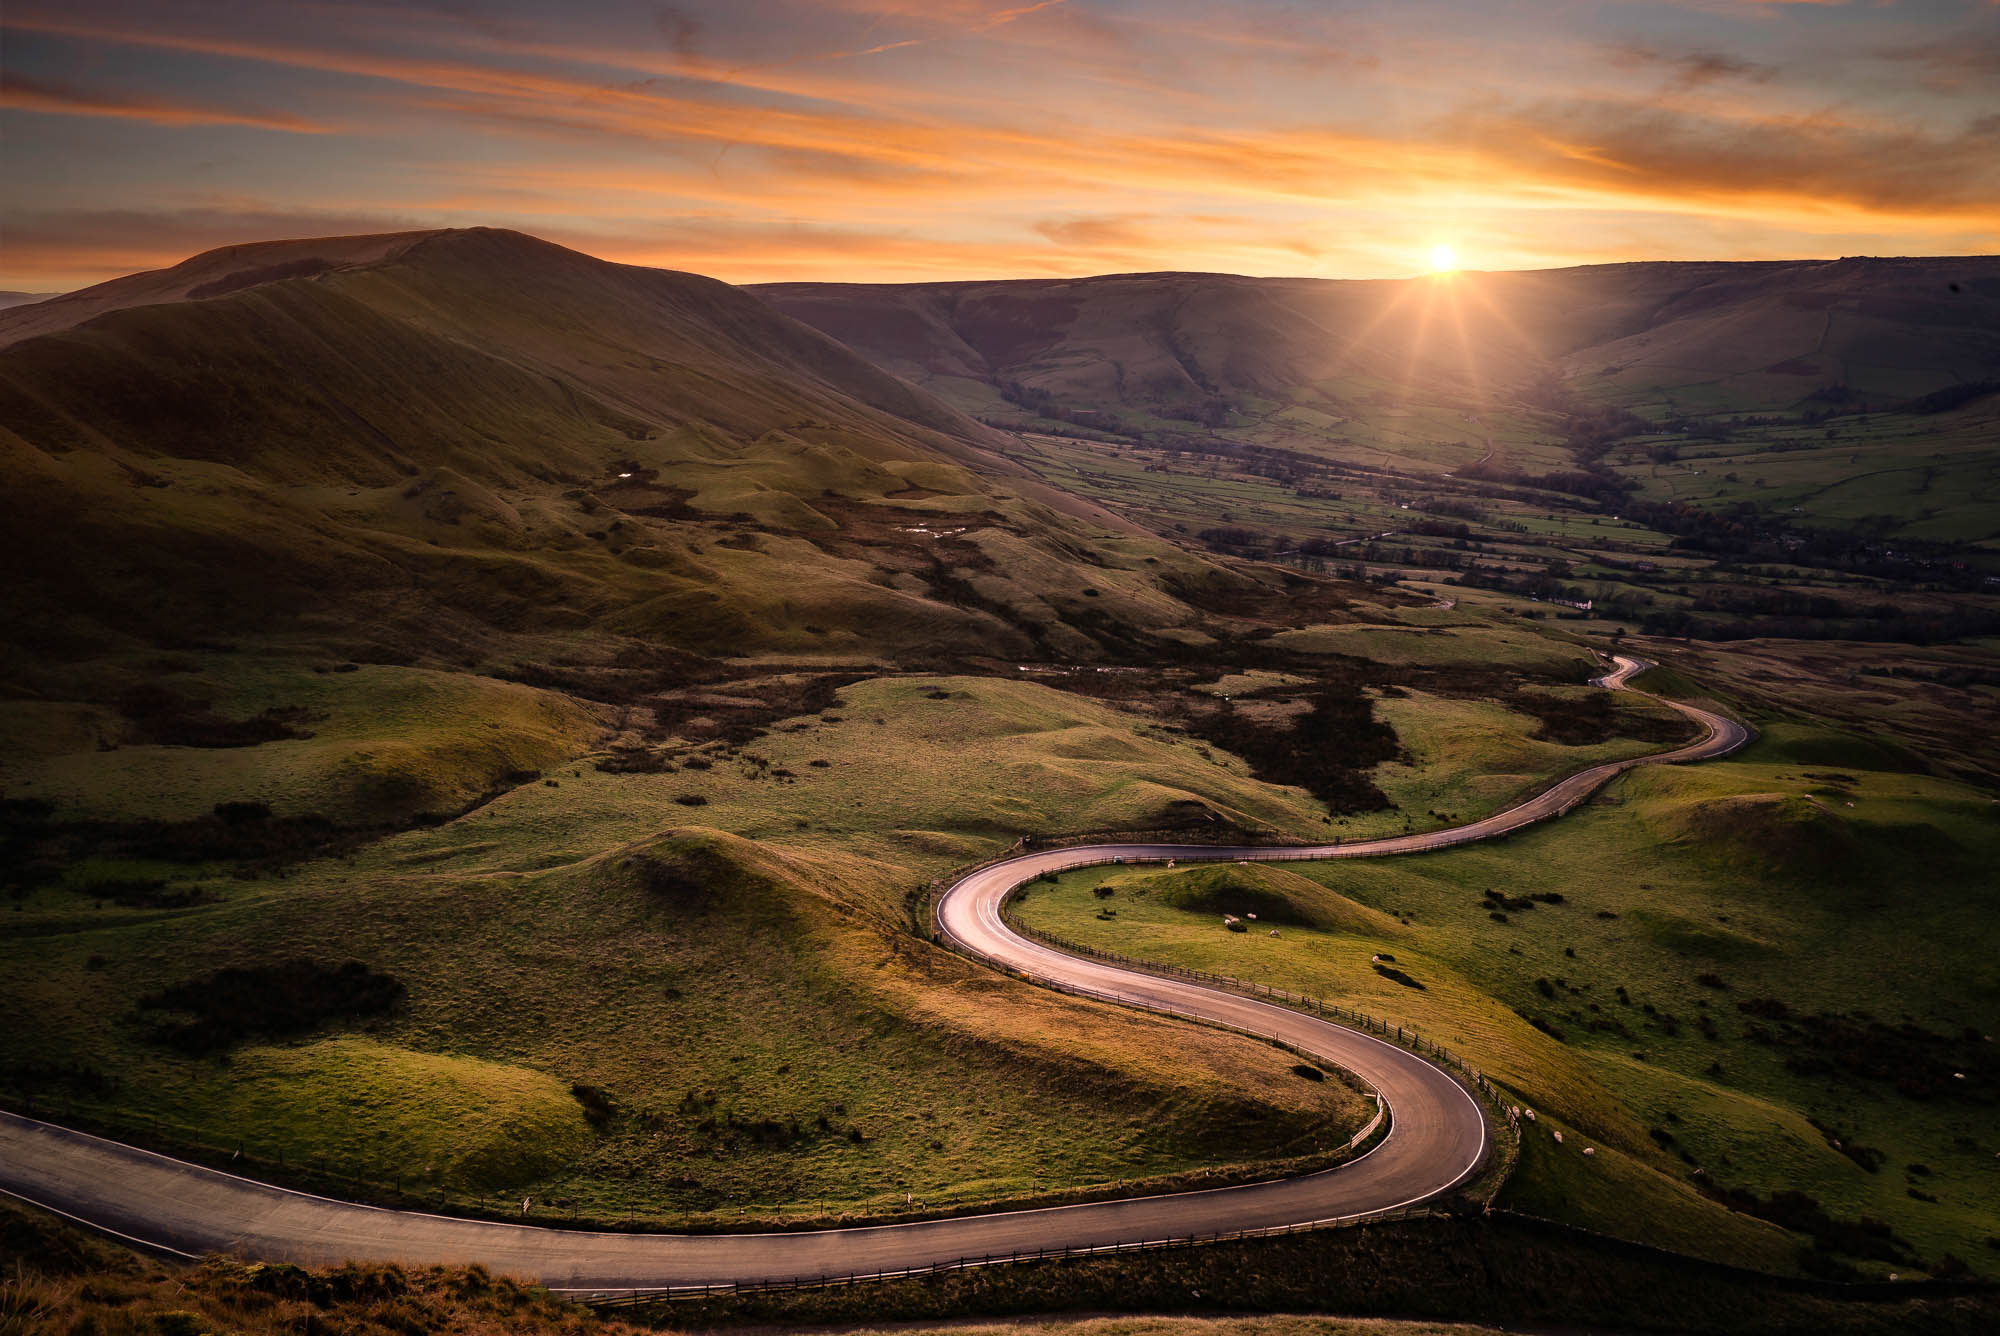 The road from Edale snakes its way up to Mam Tor in the glorious Derbyshire Peak District.